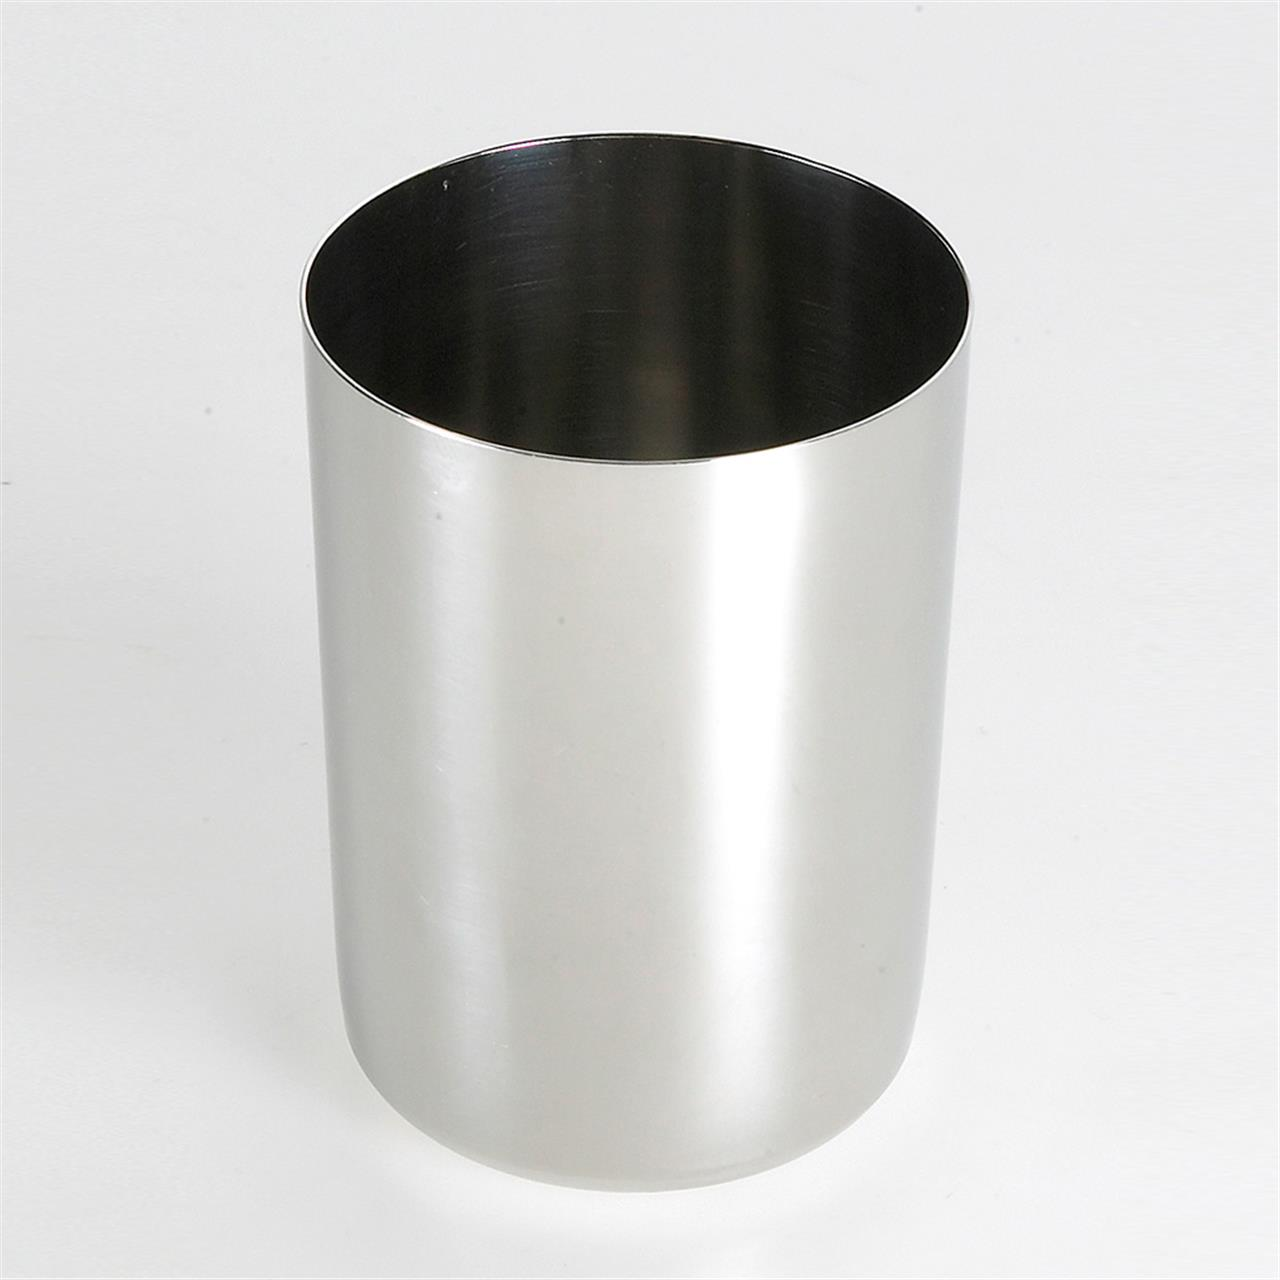 Stainless Steel sugar stick holder